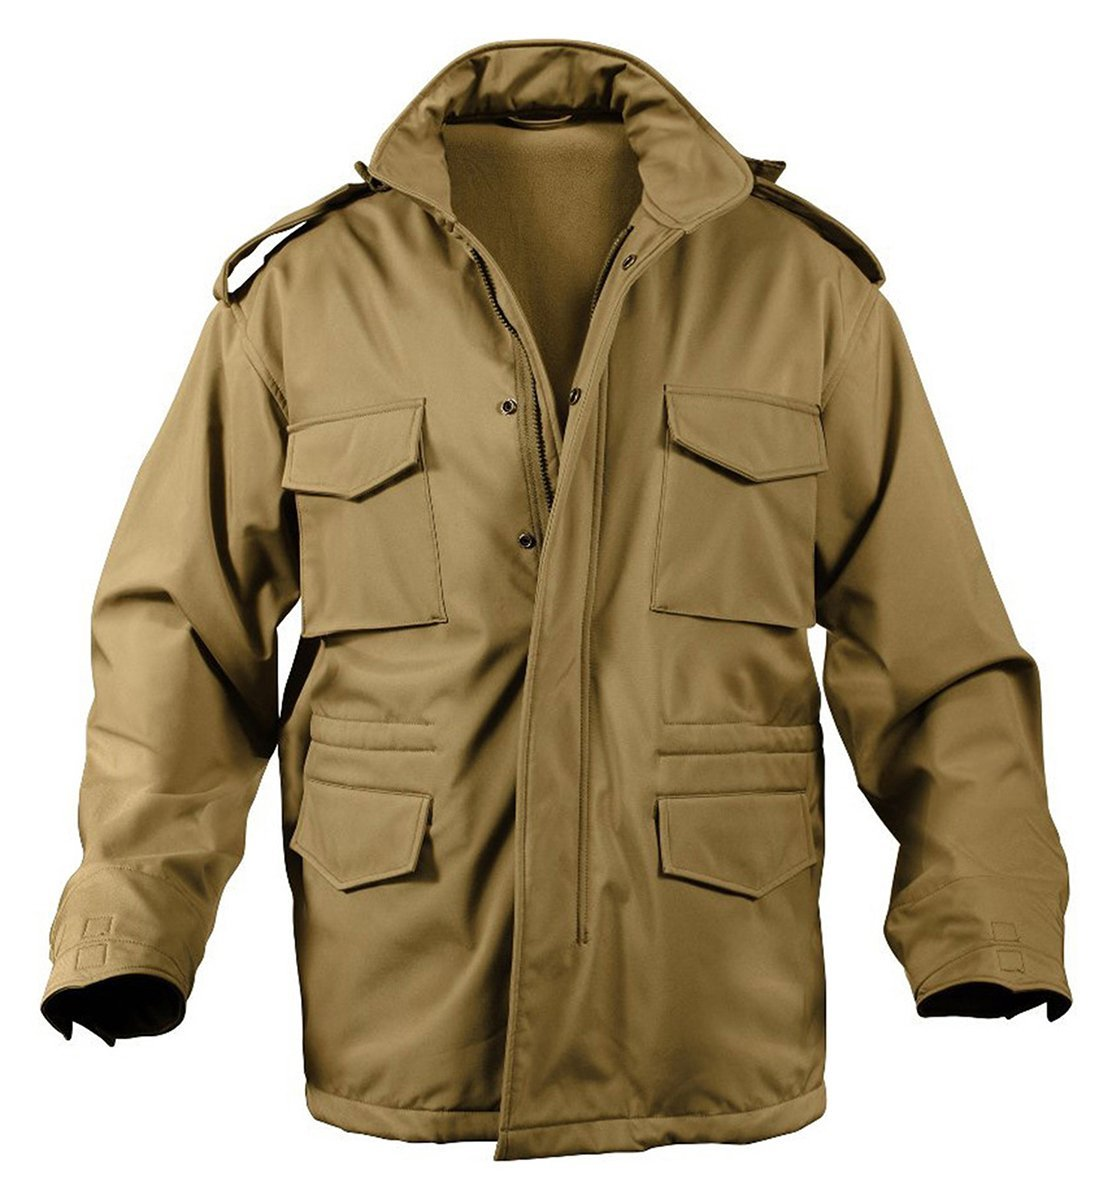 Rothco Soft Shell Tactical M-65 Field Jacket - Coyote Brown, 2X-Large